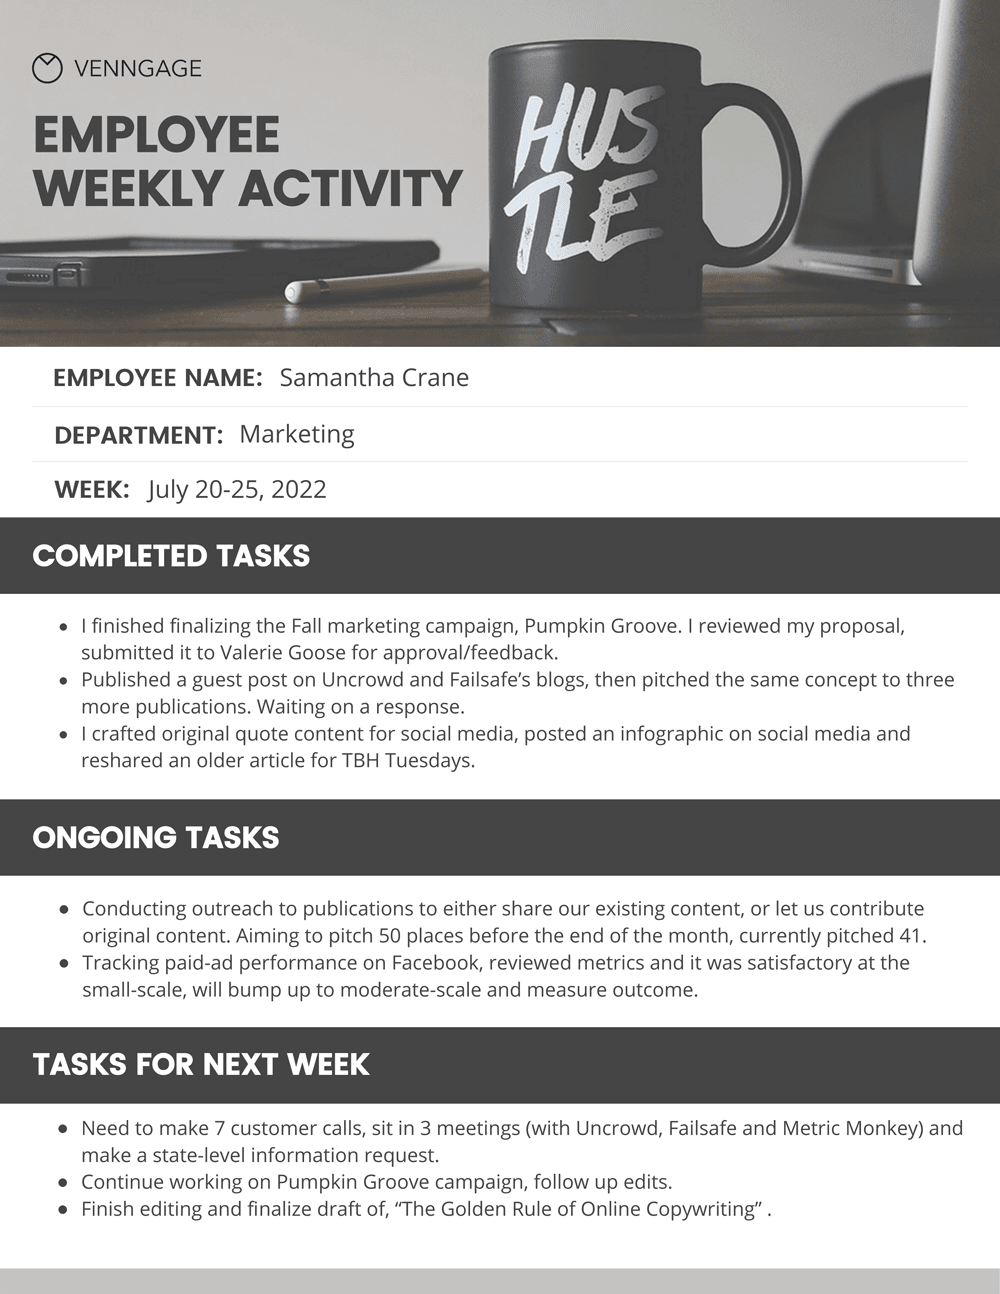 Simple Employee Weekly Report Template - Venngage